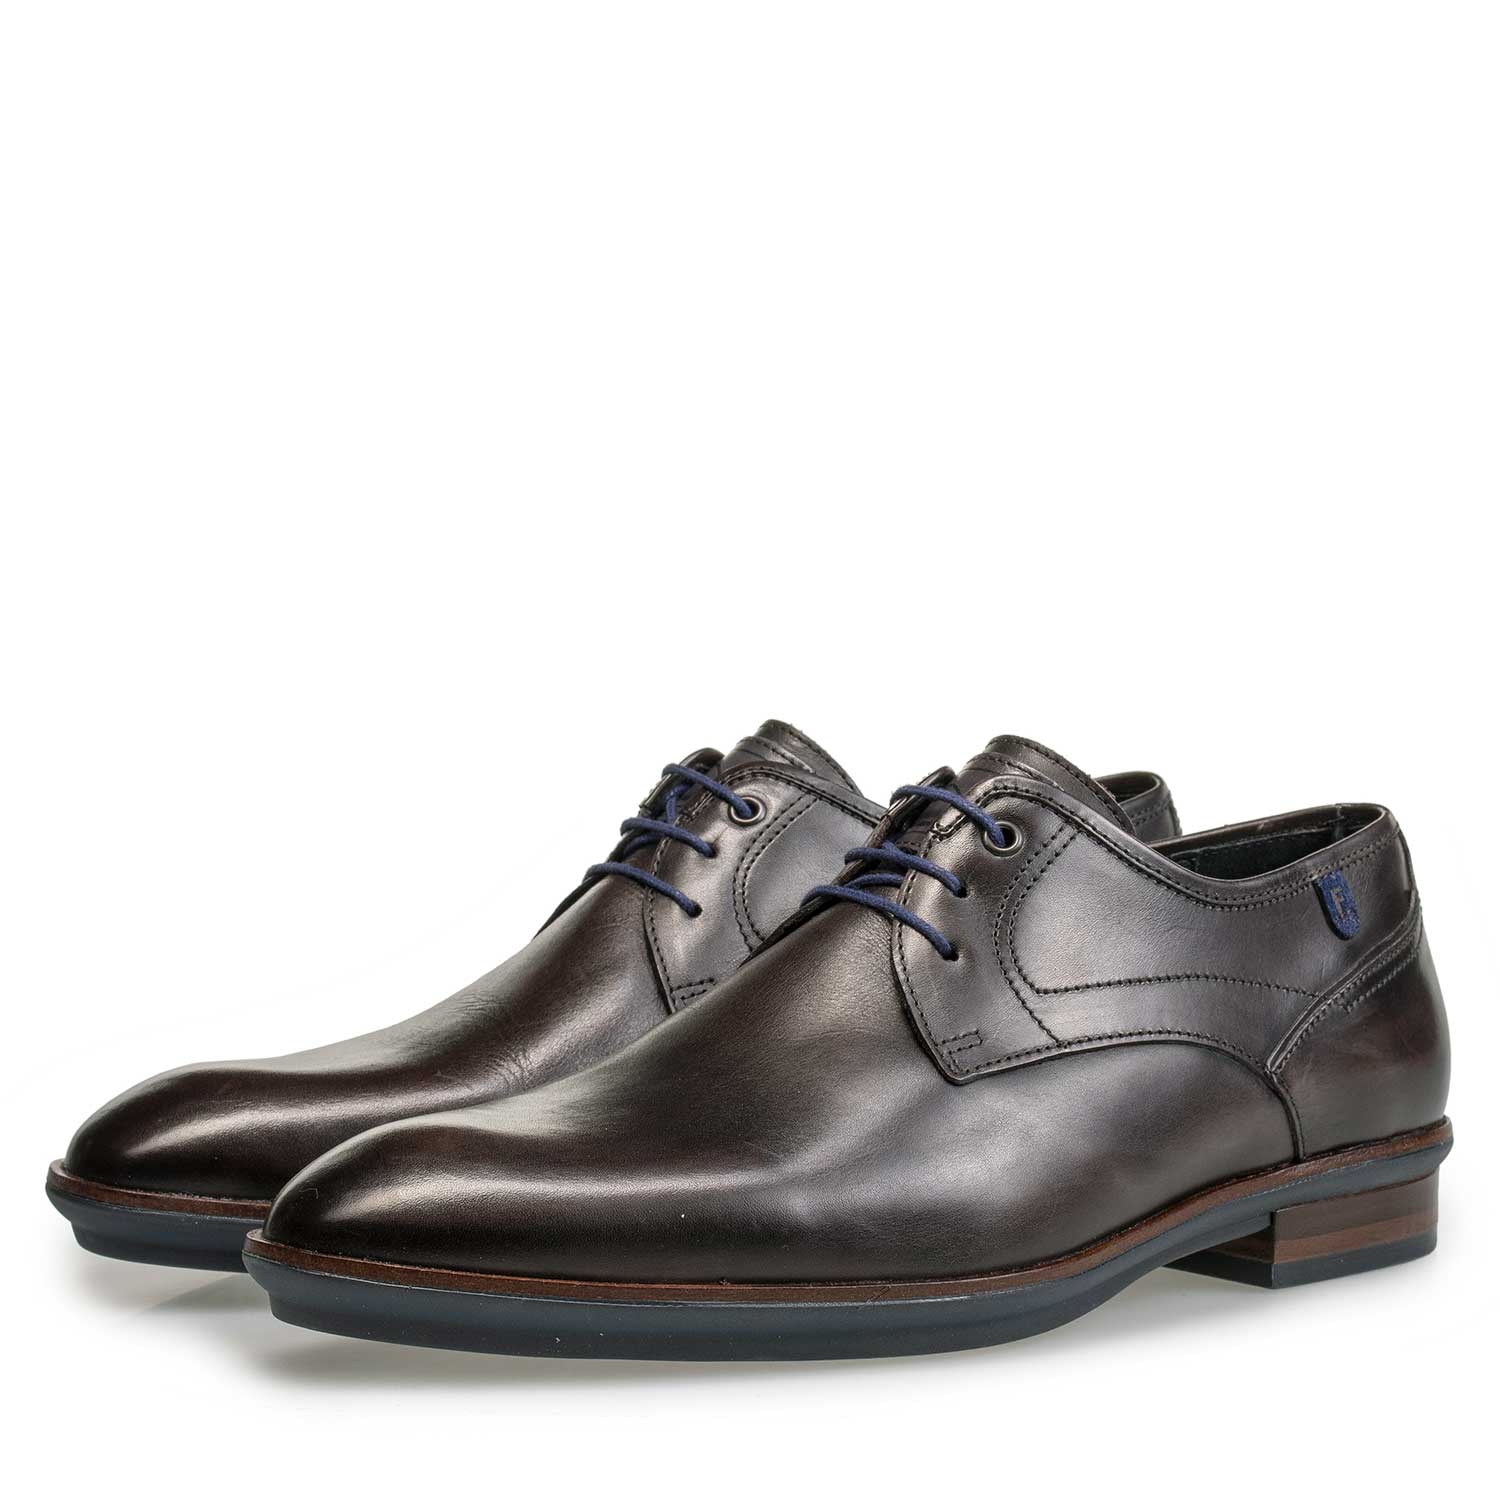 14293/01 - Dark brown calf's leather lace shoe